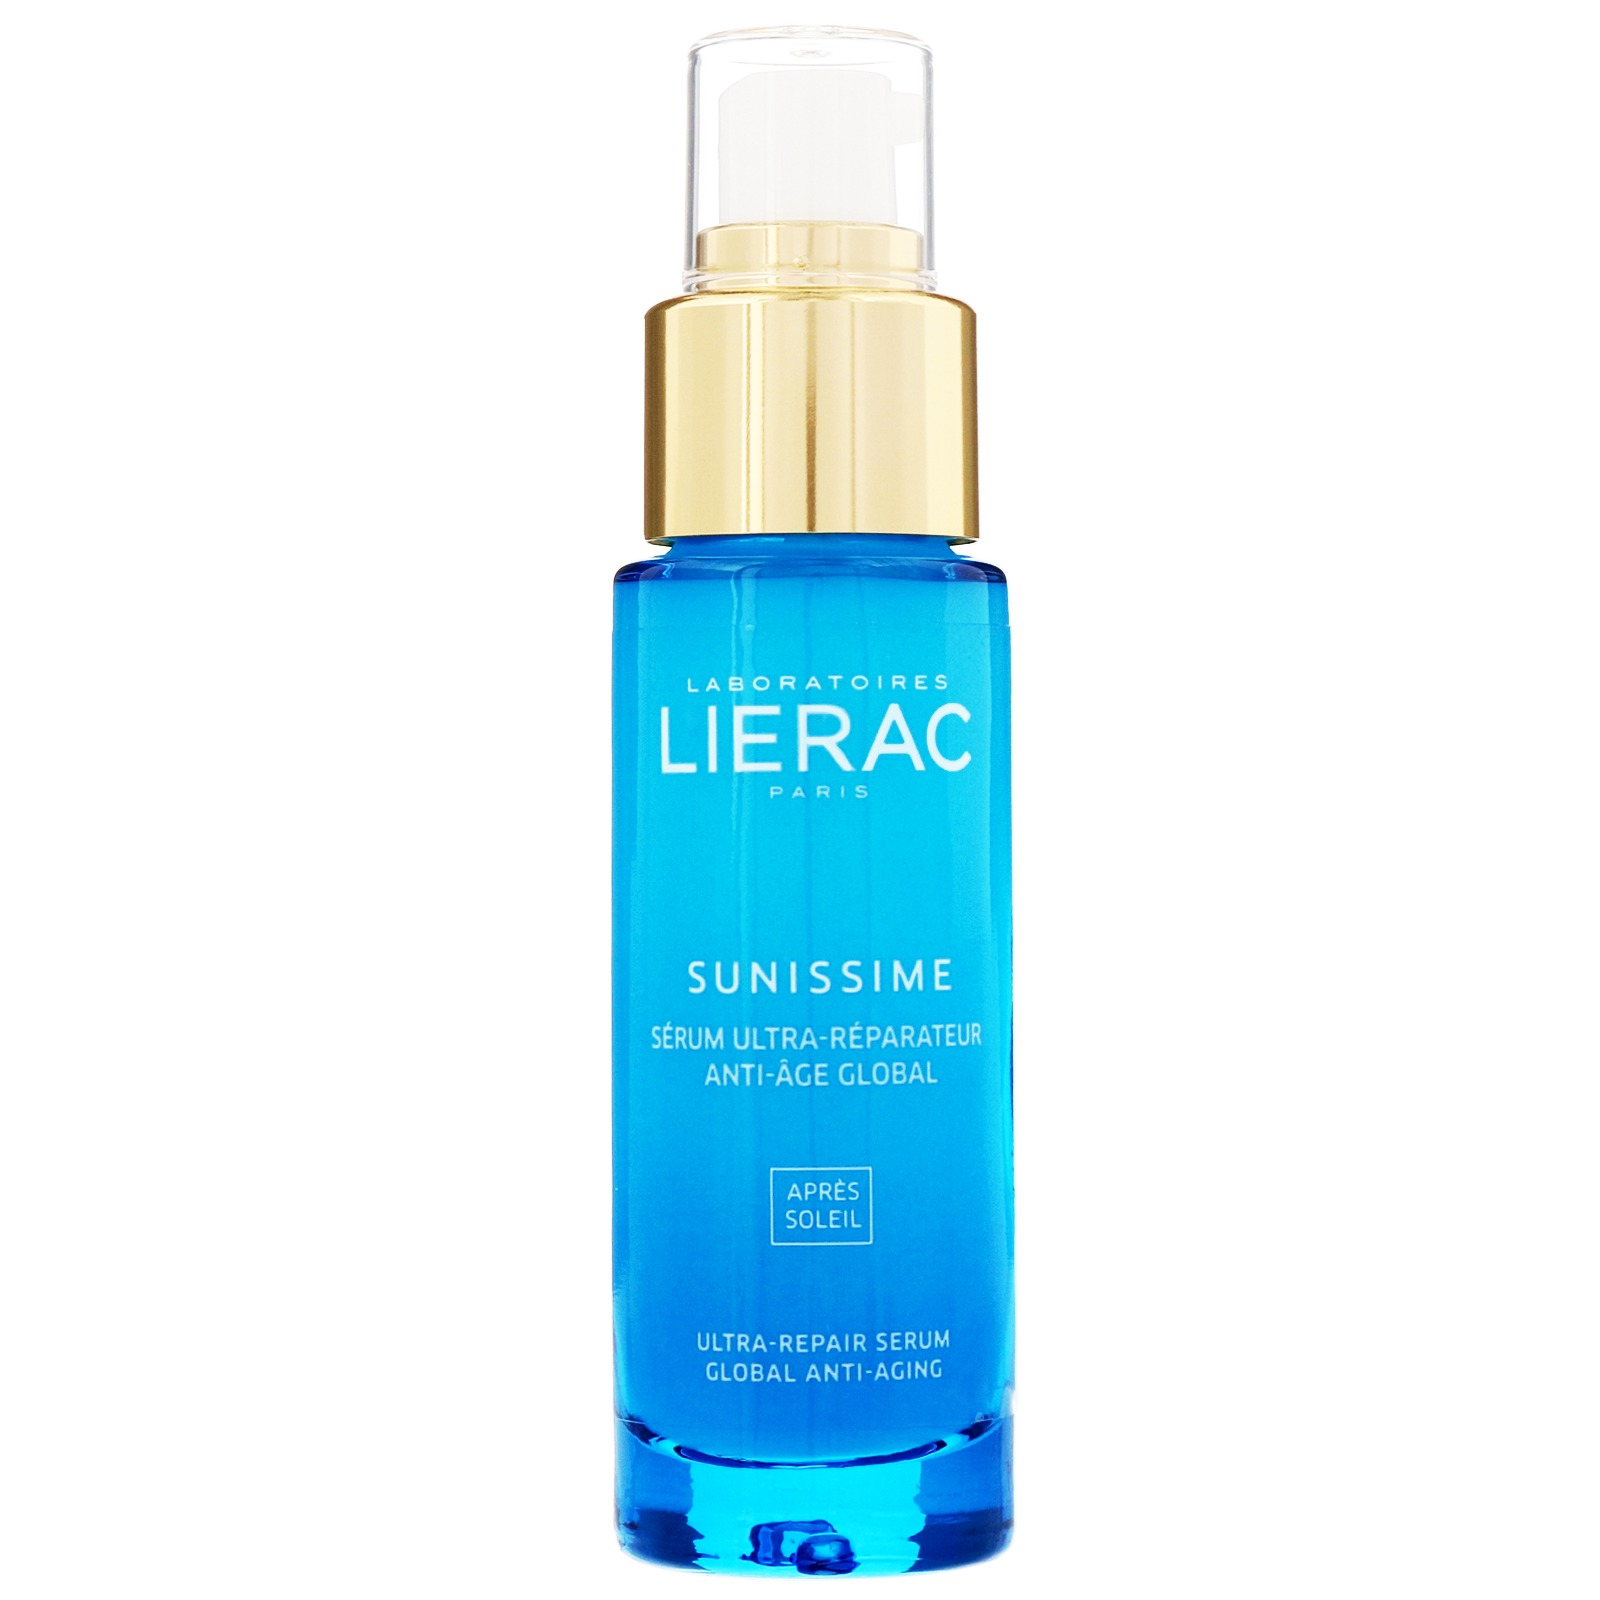 Lierac Sunissime SOS Repairing Serum: Anti-Ageing After Sun For face and Neck 30ml / 1.01 fl.oz.